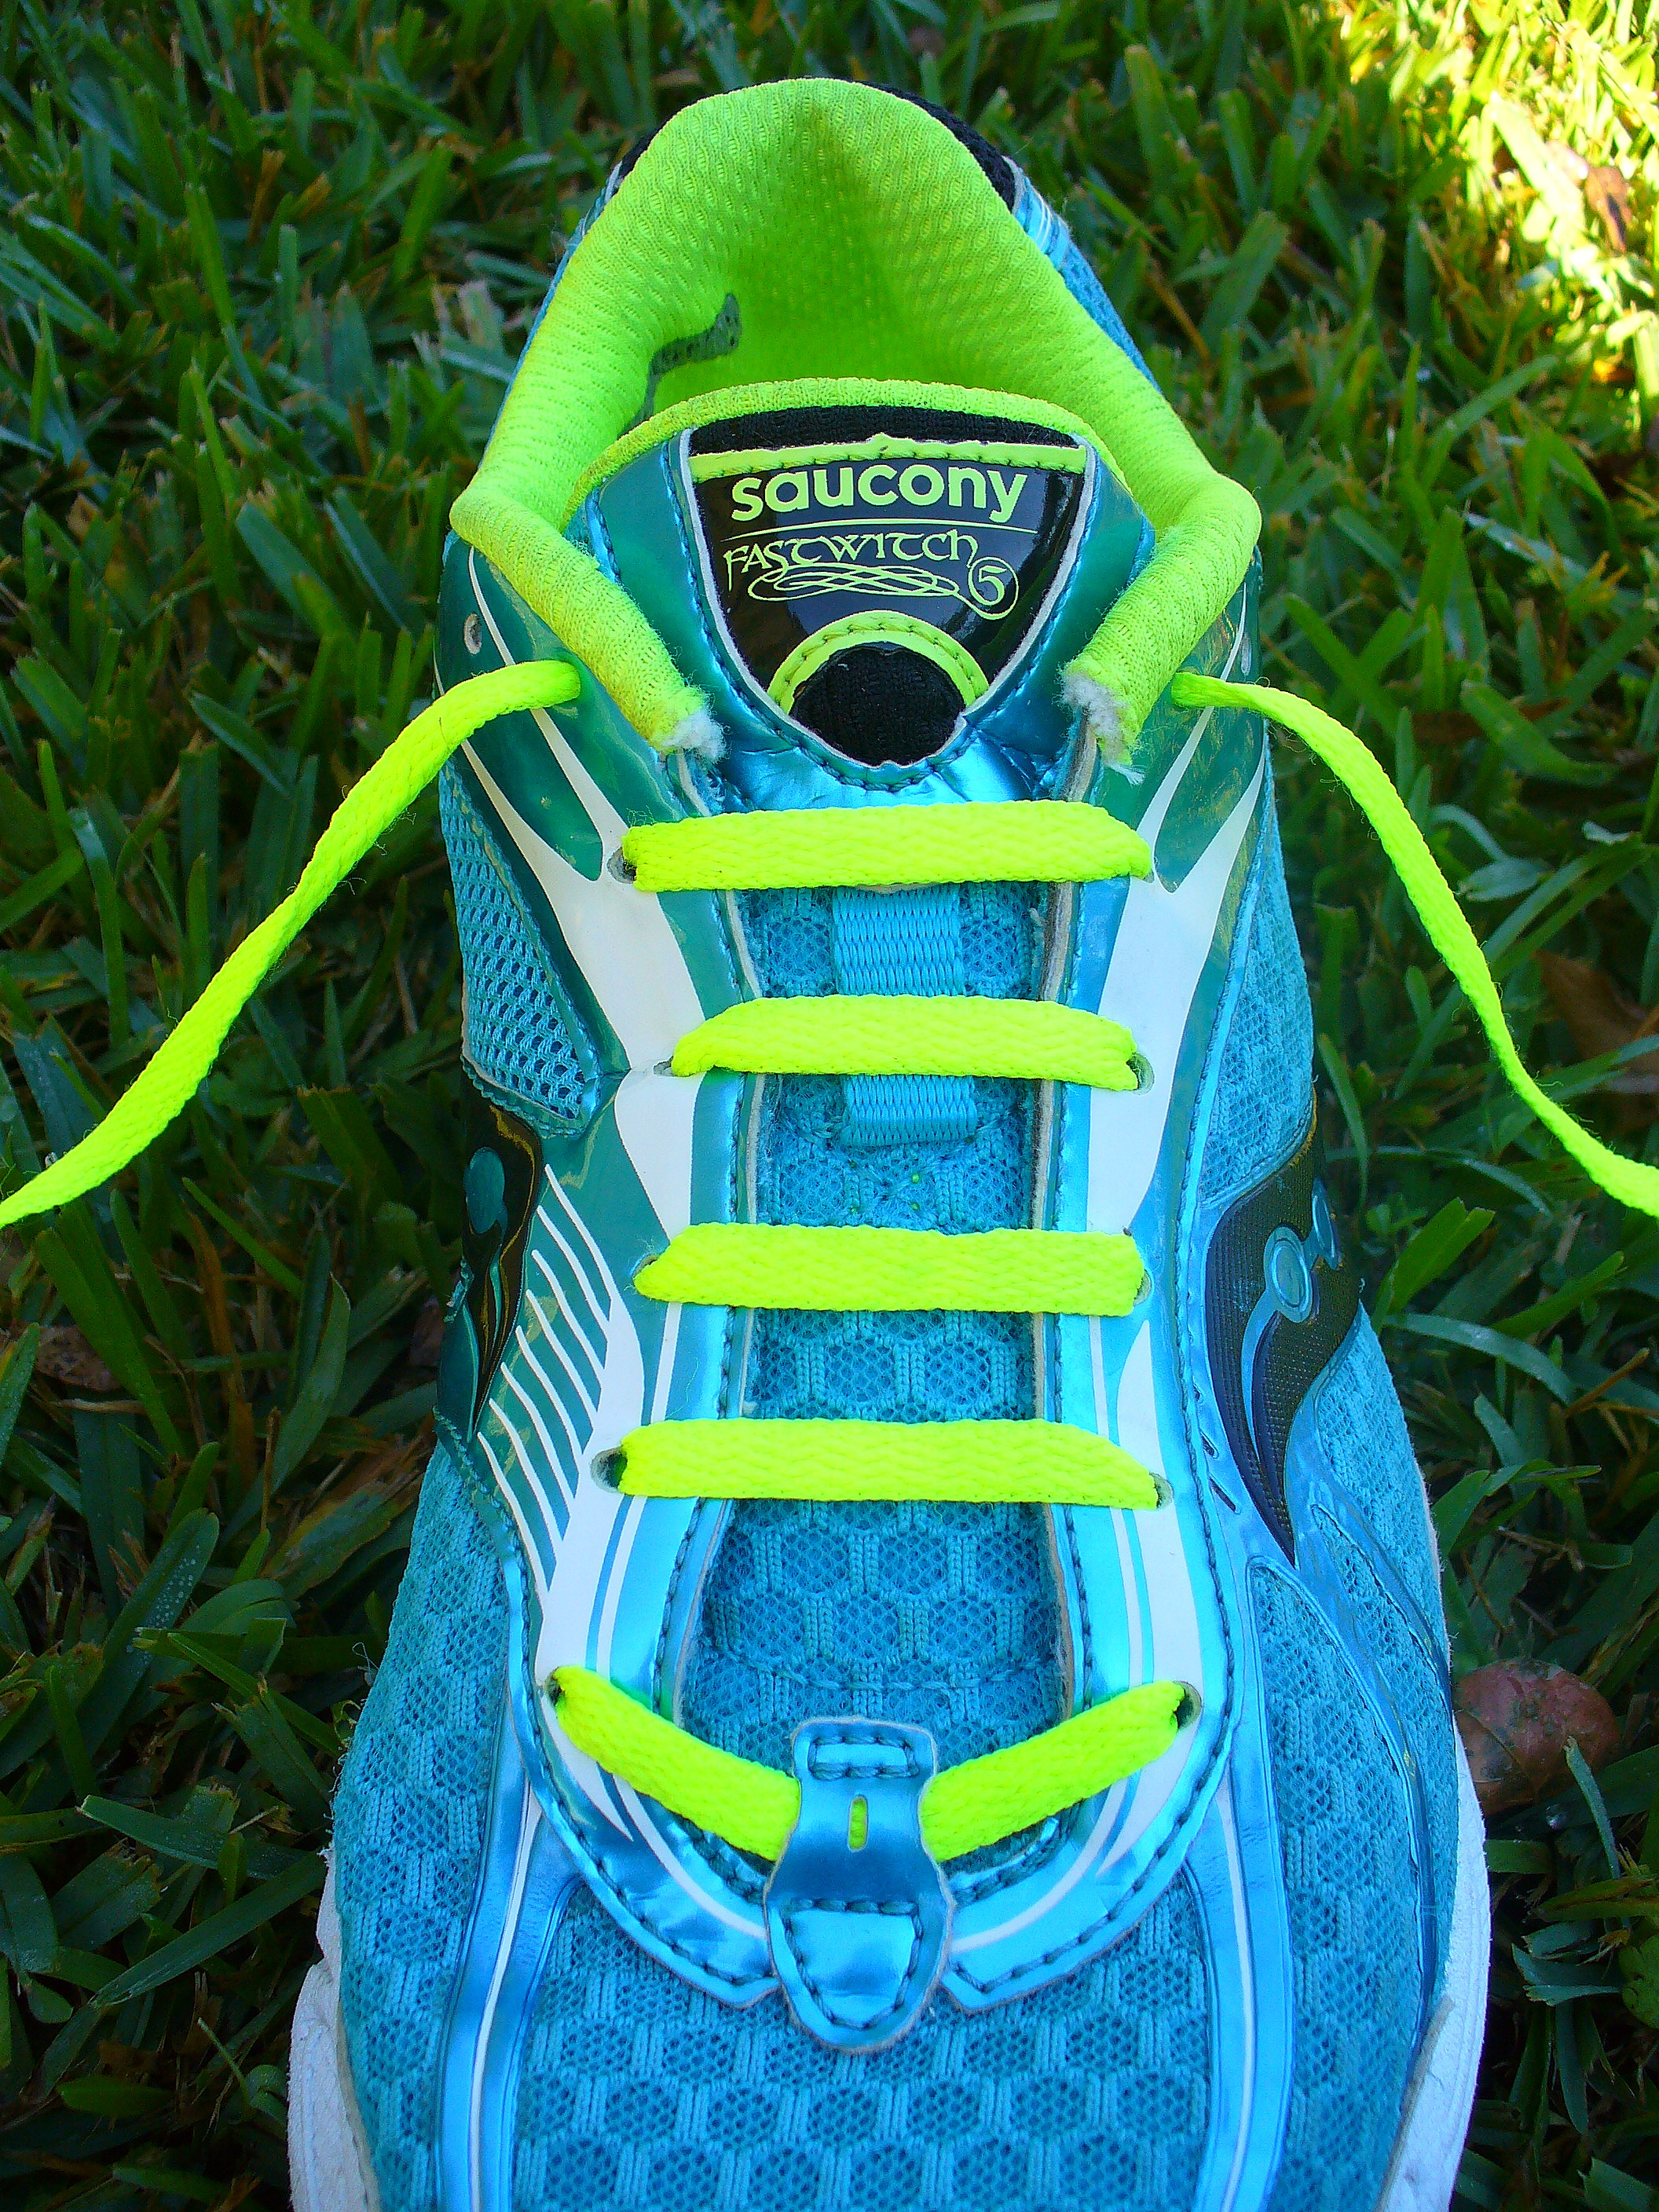 Lacing Shoes For Wide Feet